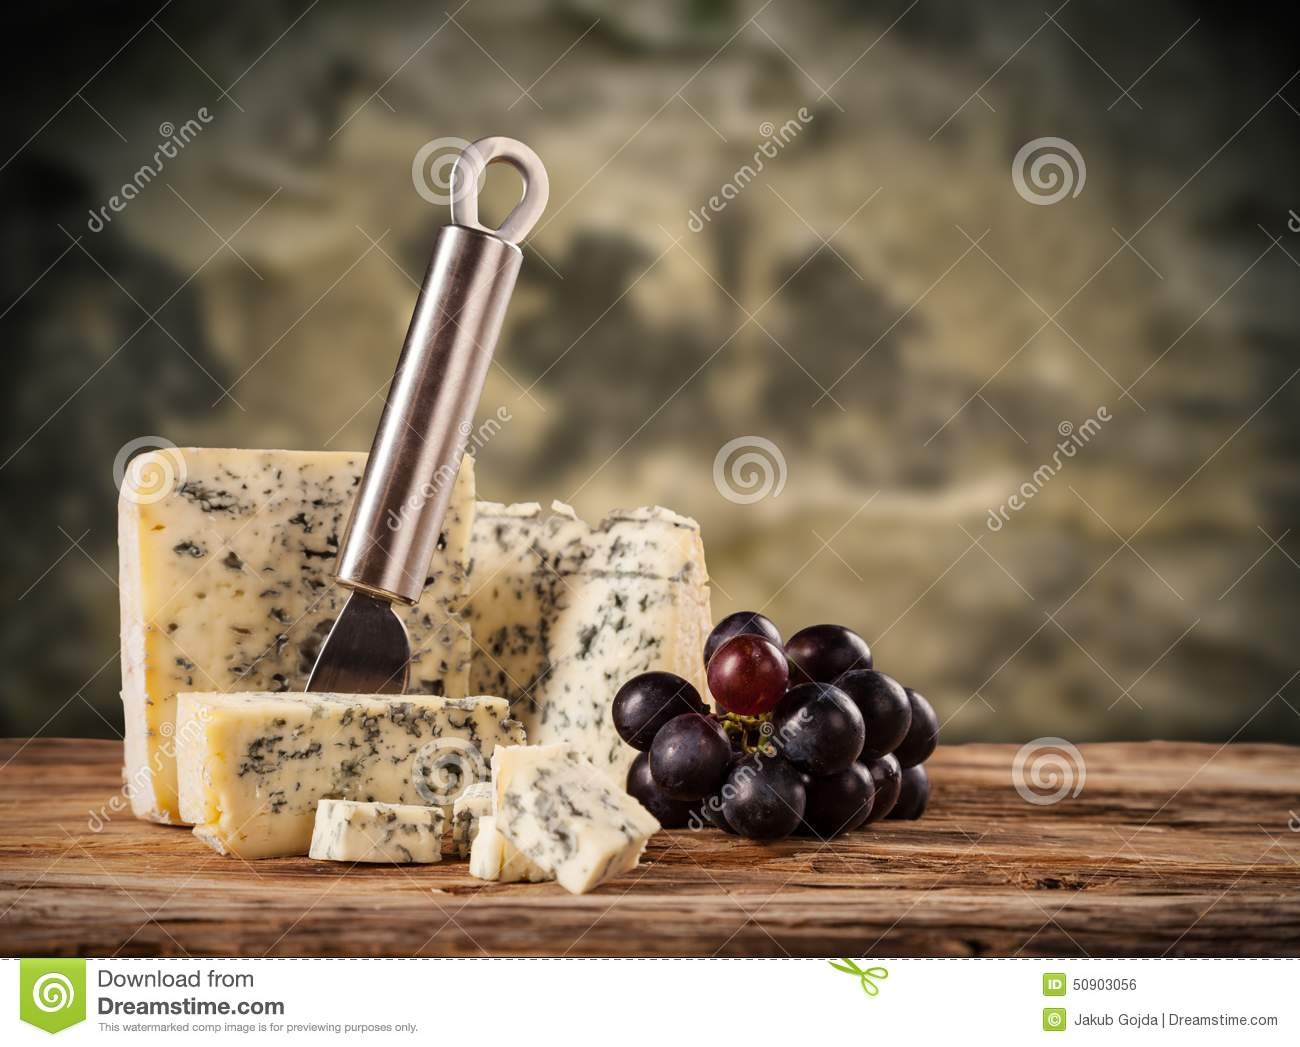 Blue cheese on wood